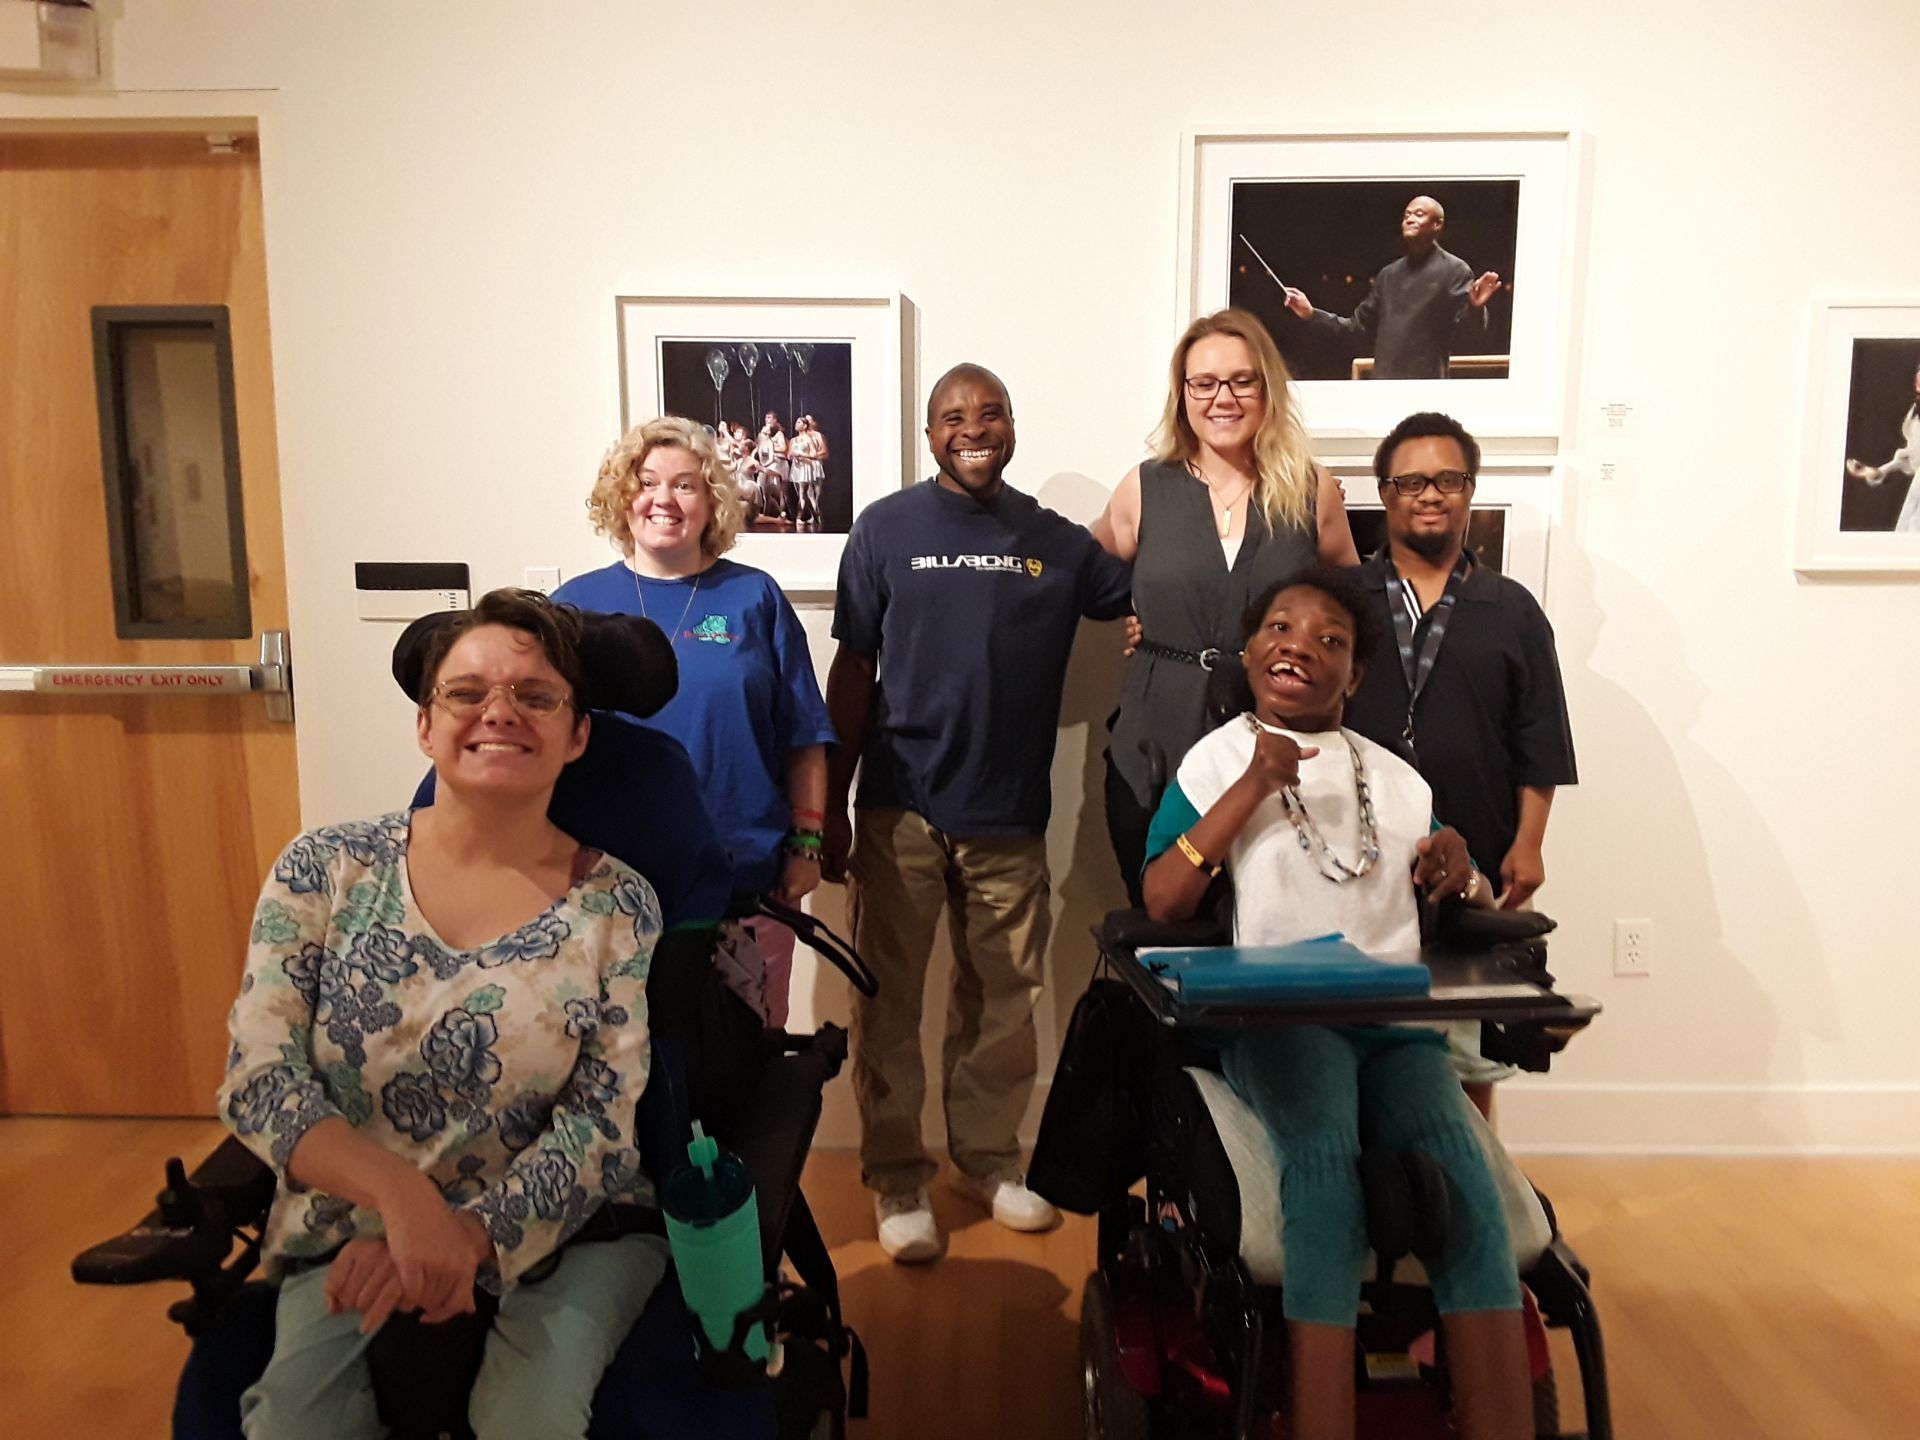 group of people at gallery exhibit